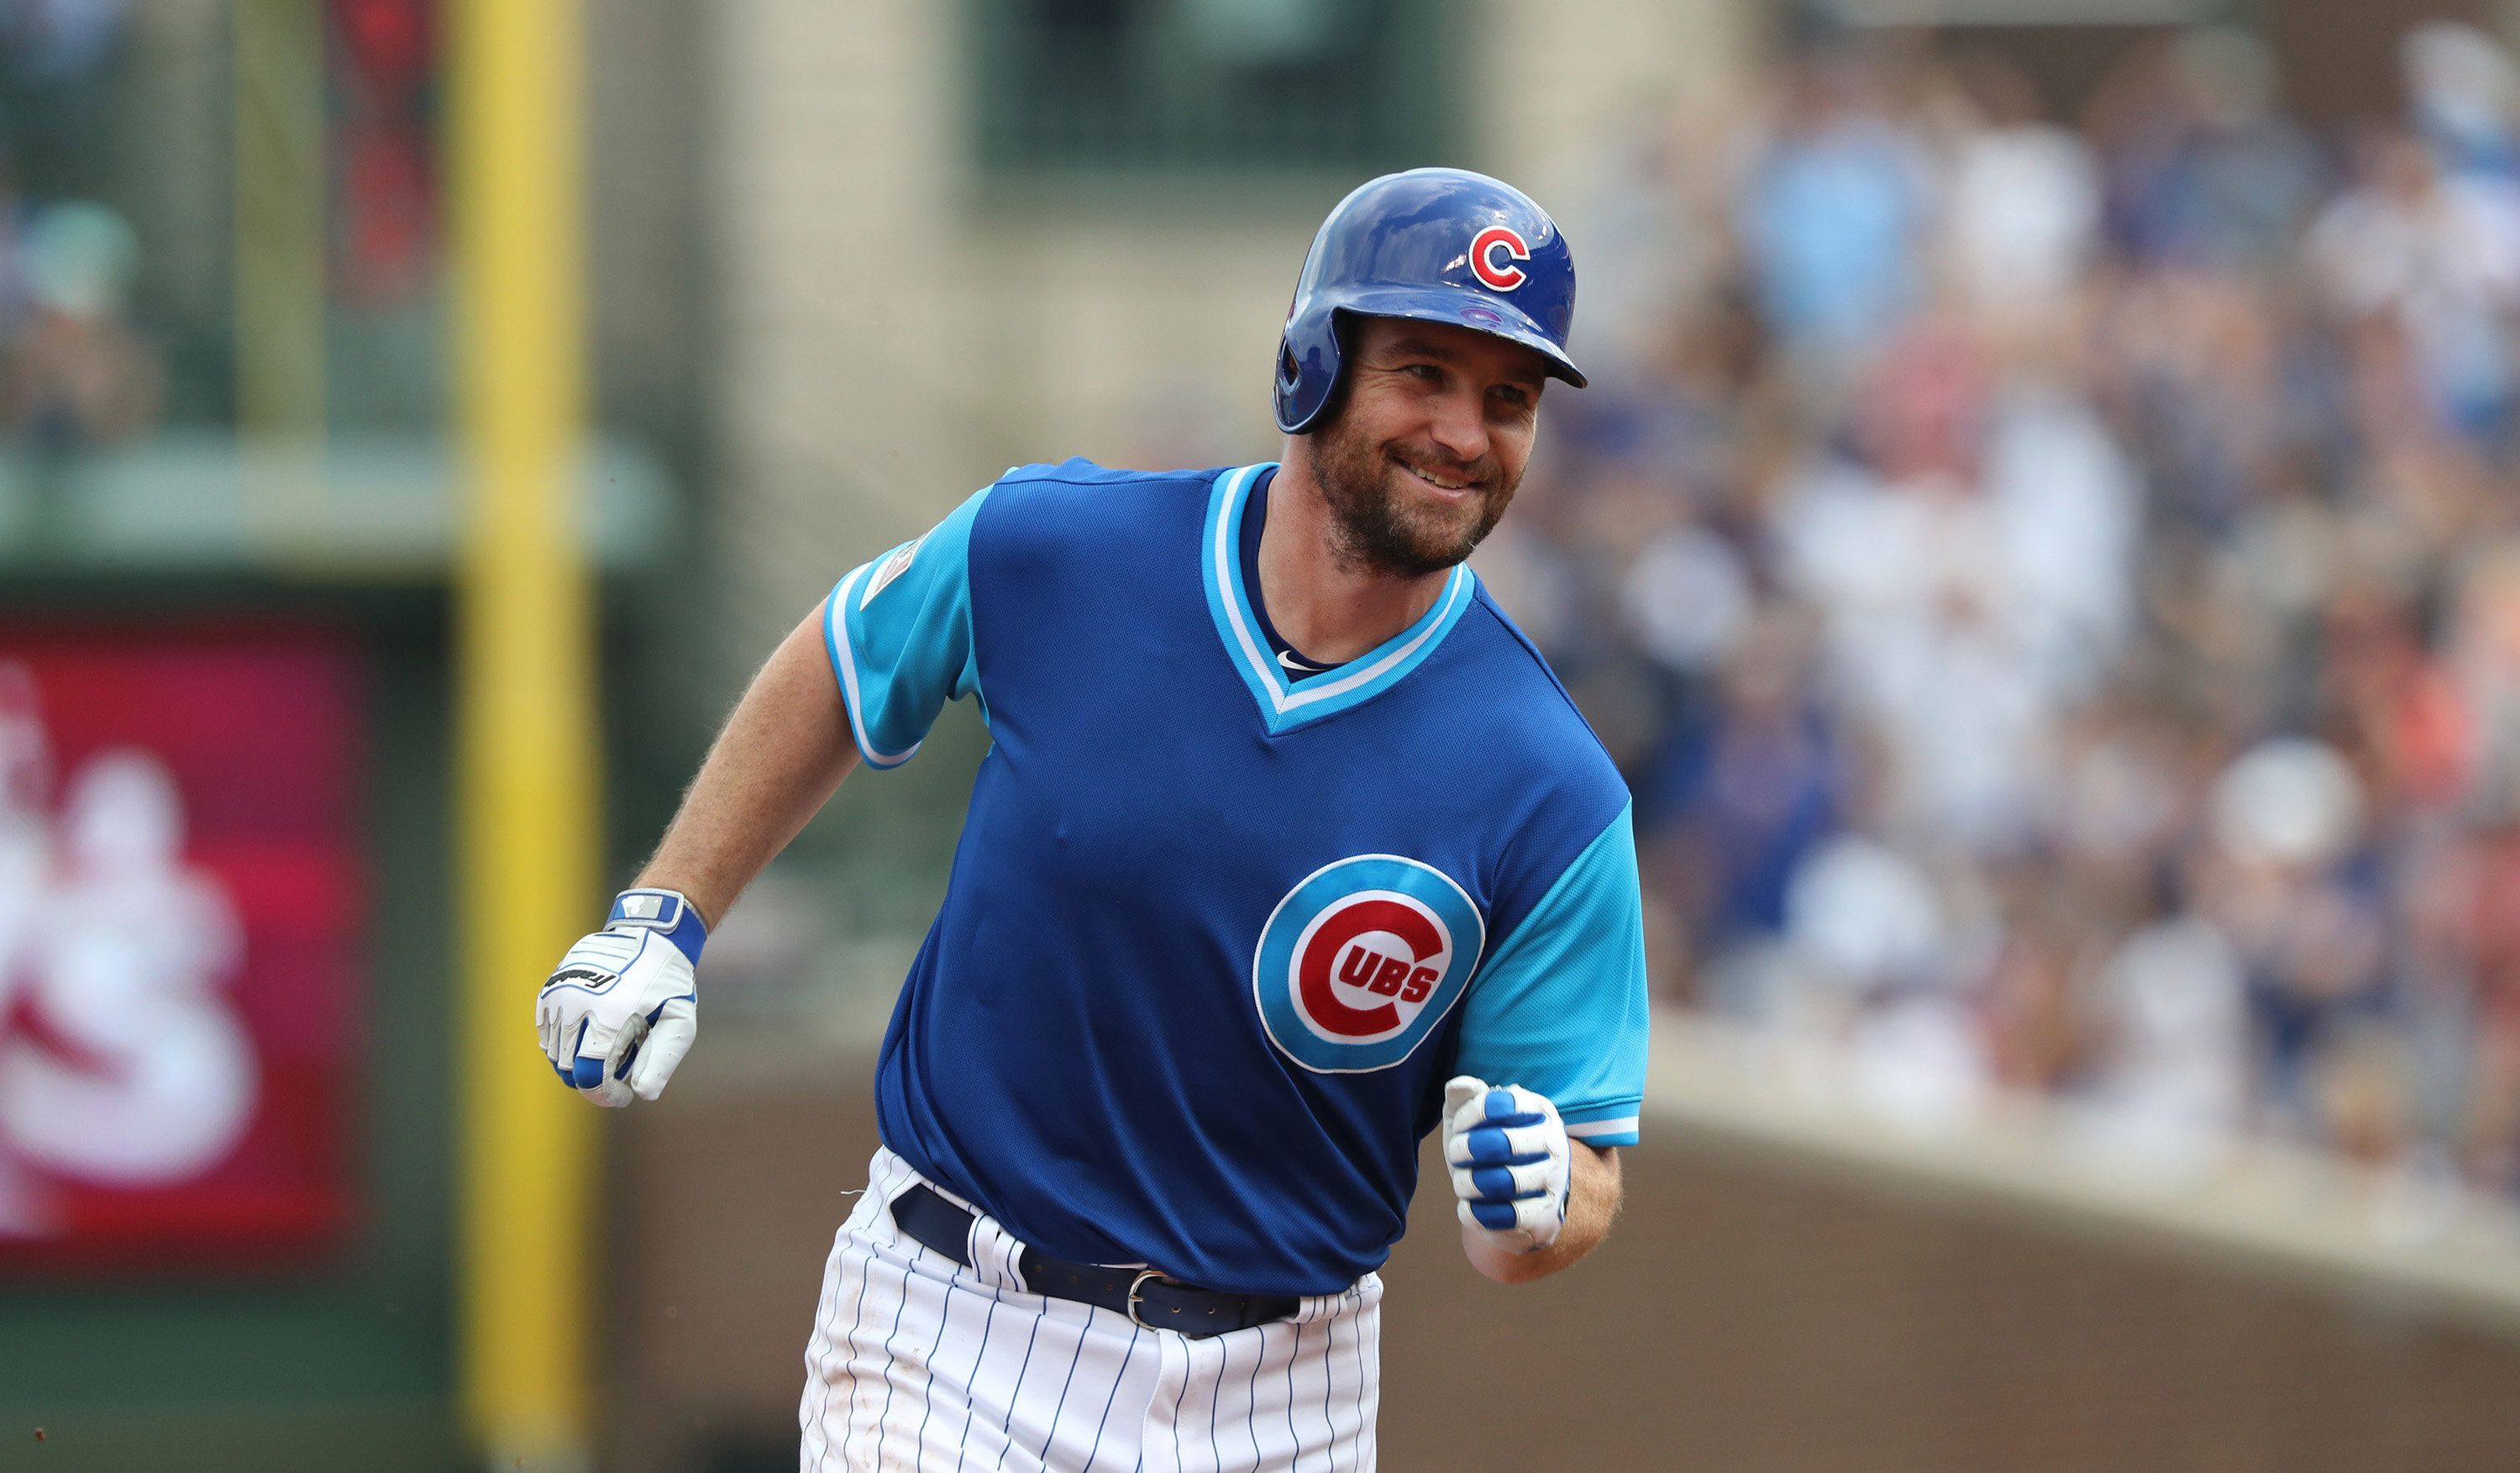 Chicago Cubs second baseman Daniel Murphy (3) rounds the bases after hitting a two-run home run in the second inning against the Cincinnati Reds on Saturday, Aug. 25, 2018 at Wrigley Field in Chicago, Ill. (John J. Kim/Chicago Tribune/TNS via Getty Images)